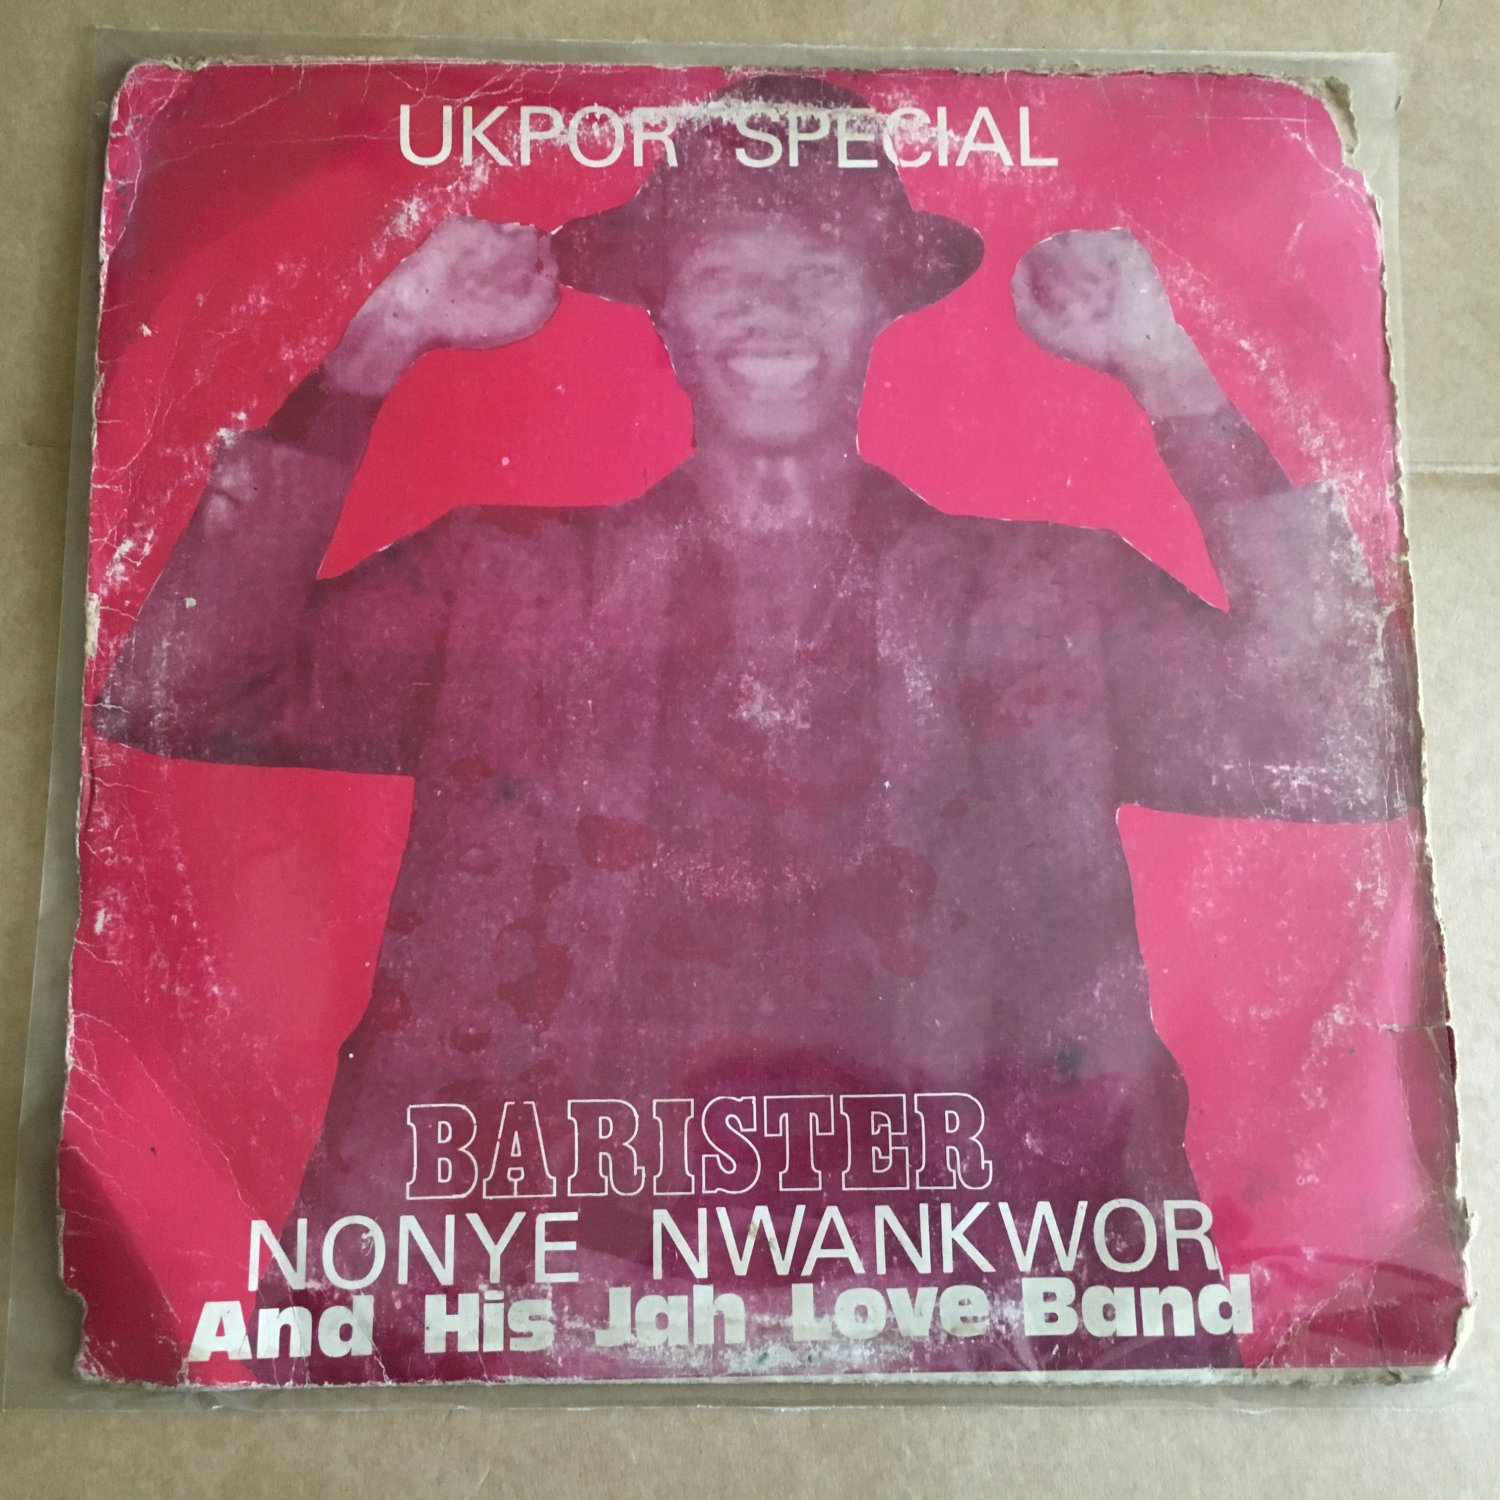 BARRISTER NONYE NWANKOLD & HIS JAH LOVE BAND LP ukpor special NIGERIA mp3 LISTEN